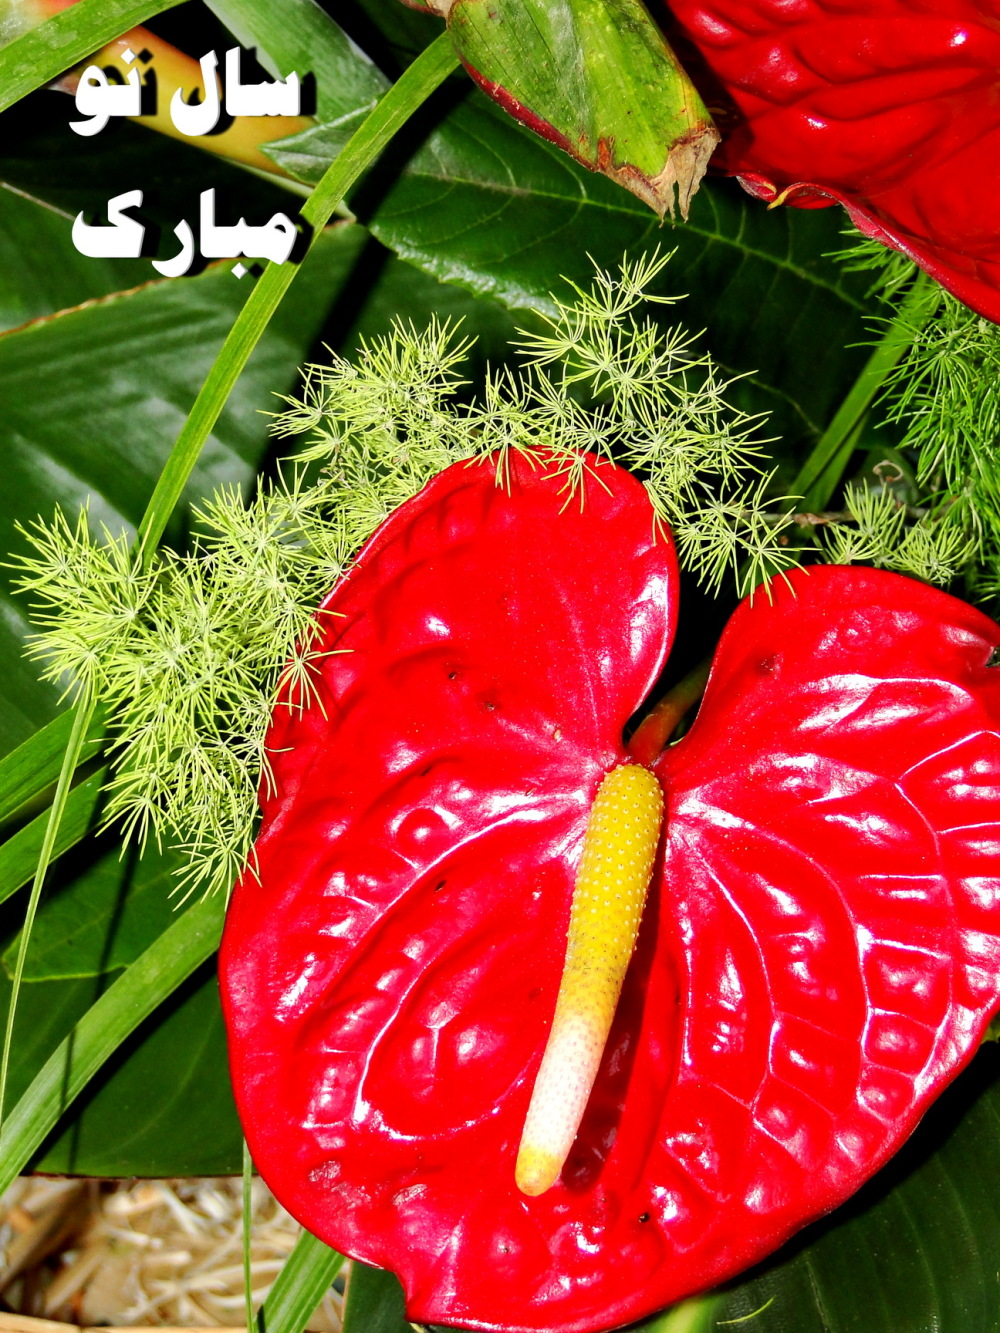 HAPPY NEW IRANIAN YEAR